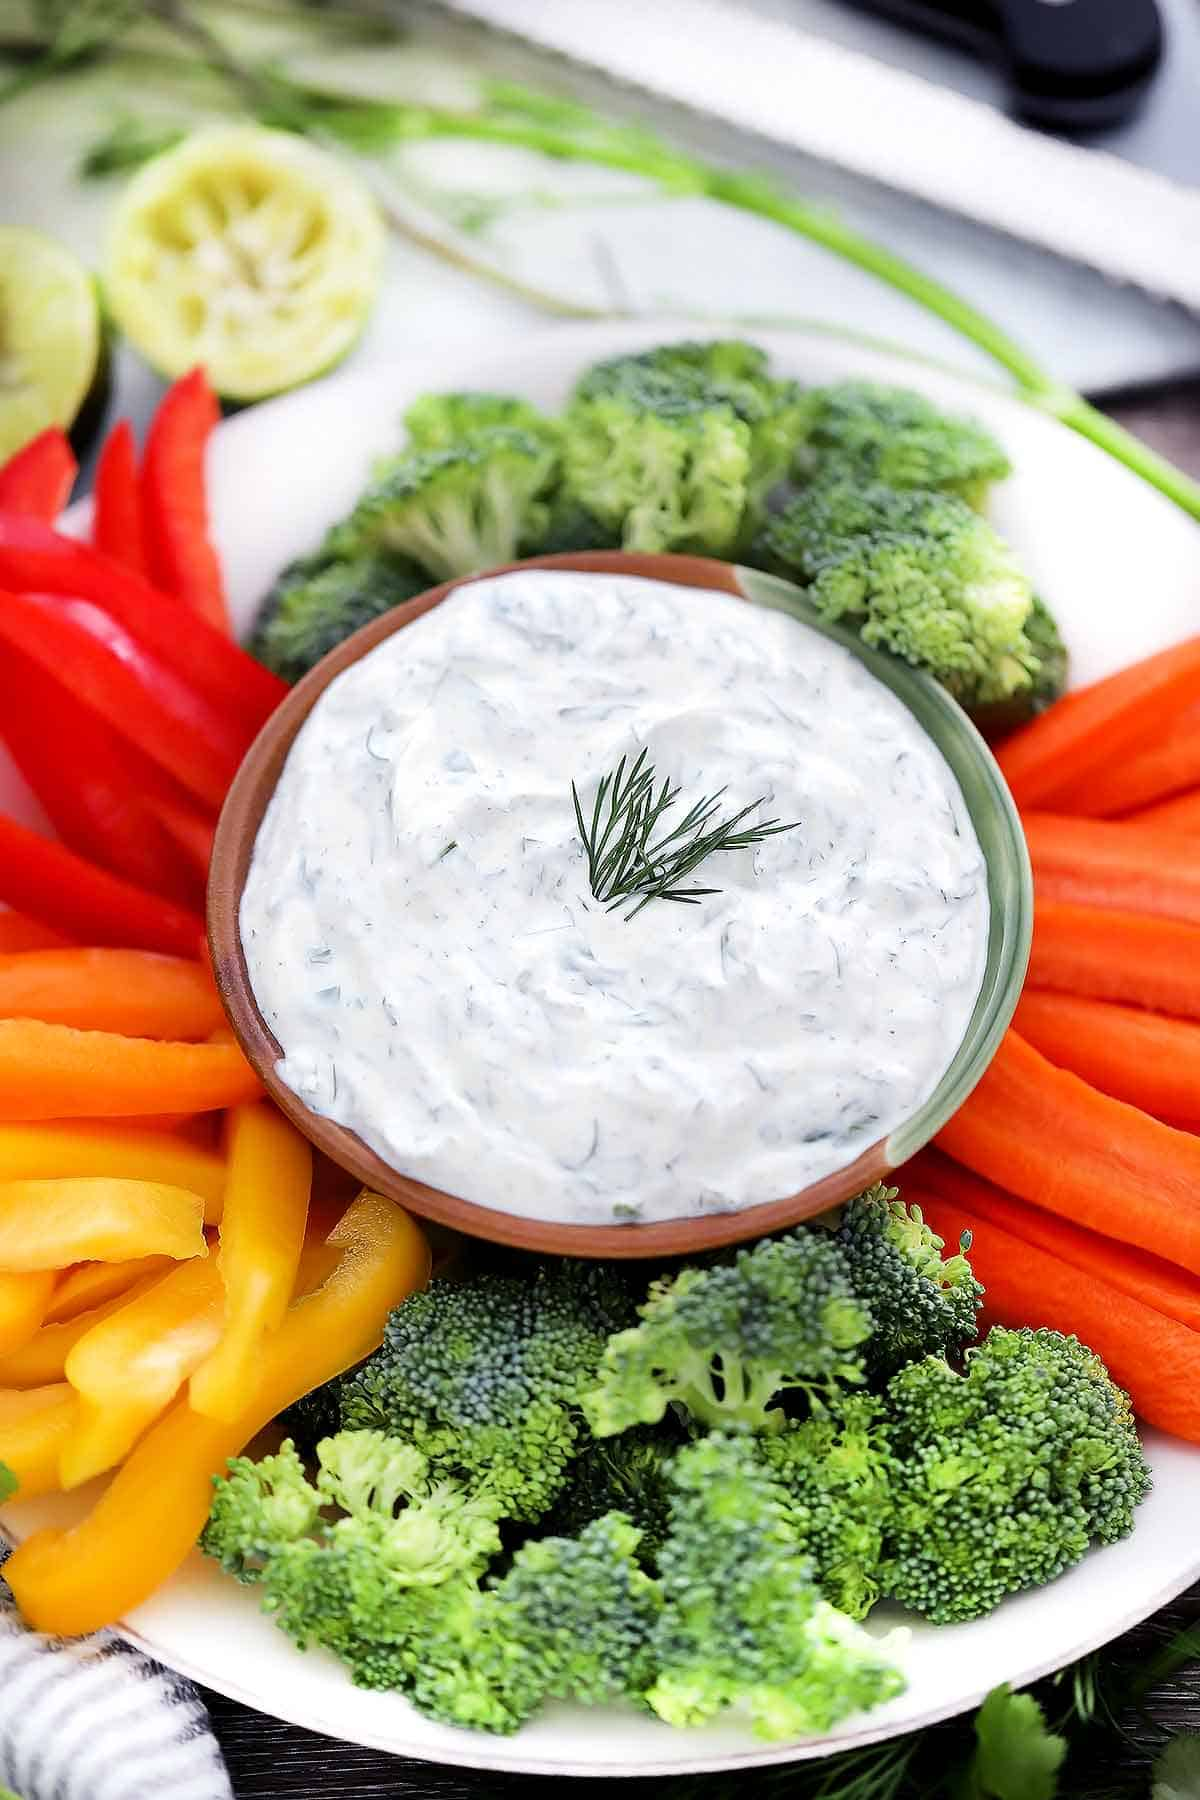 Dill dip on a plate with broccoli, peppers, and carrots.